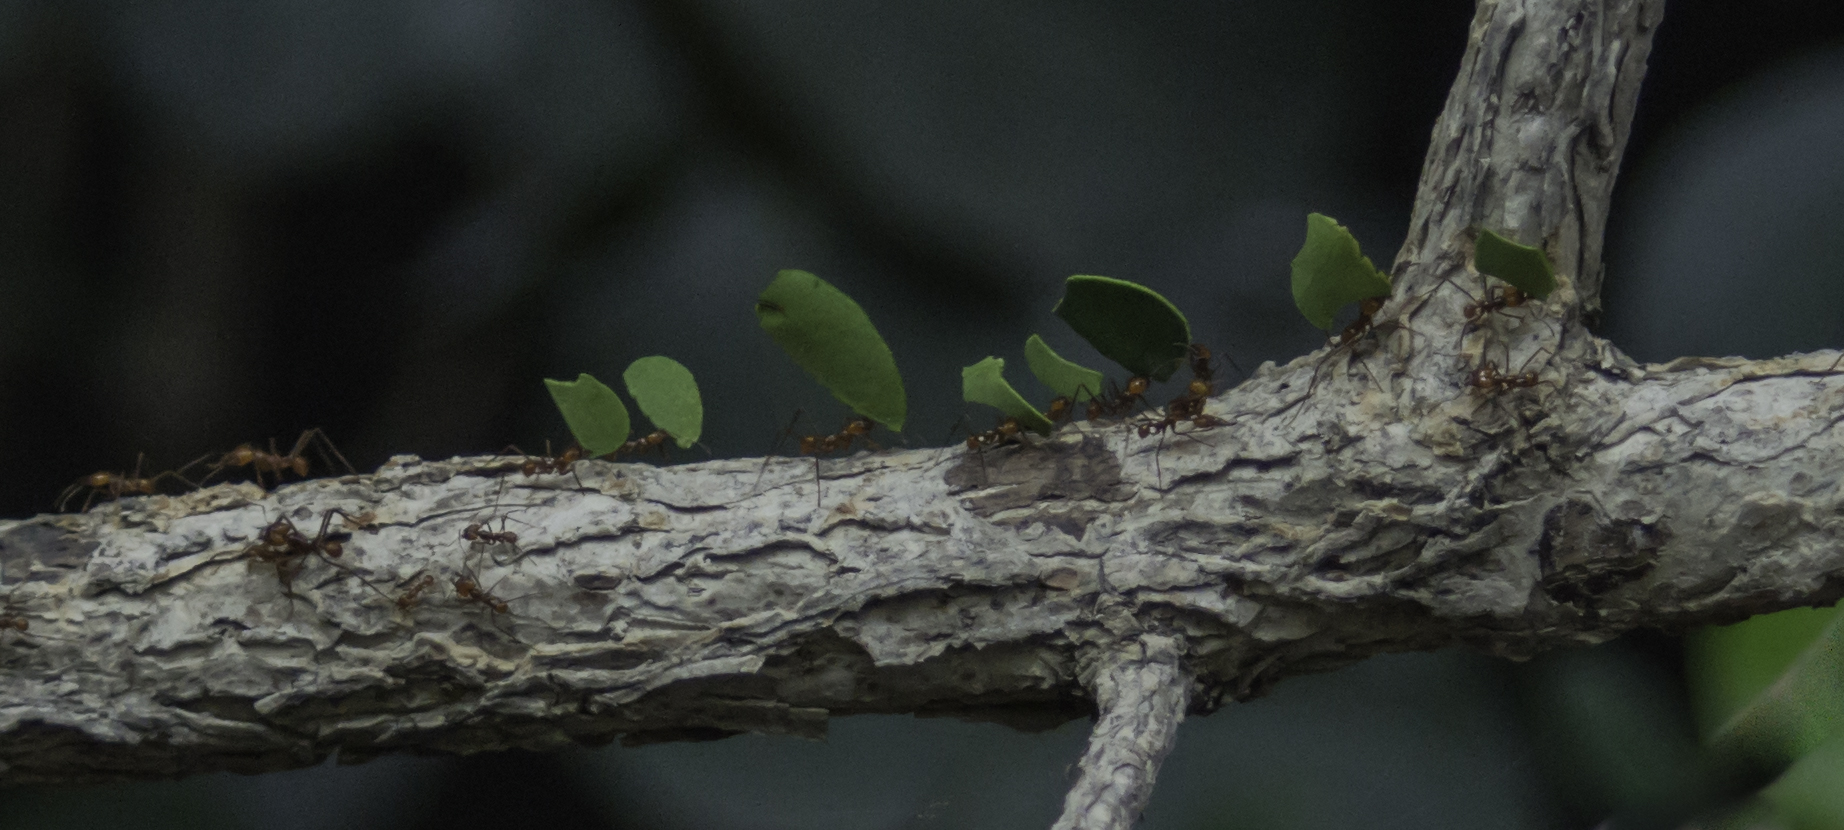 Atta sexdens at work - mushroom ants carrying pieces of leaf